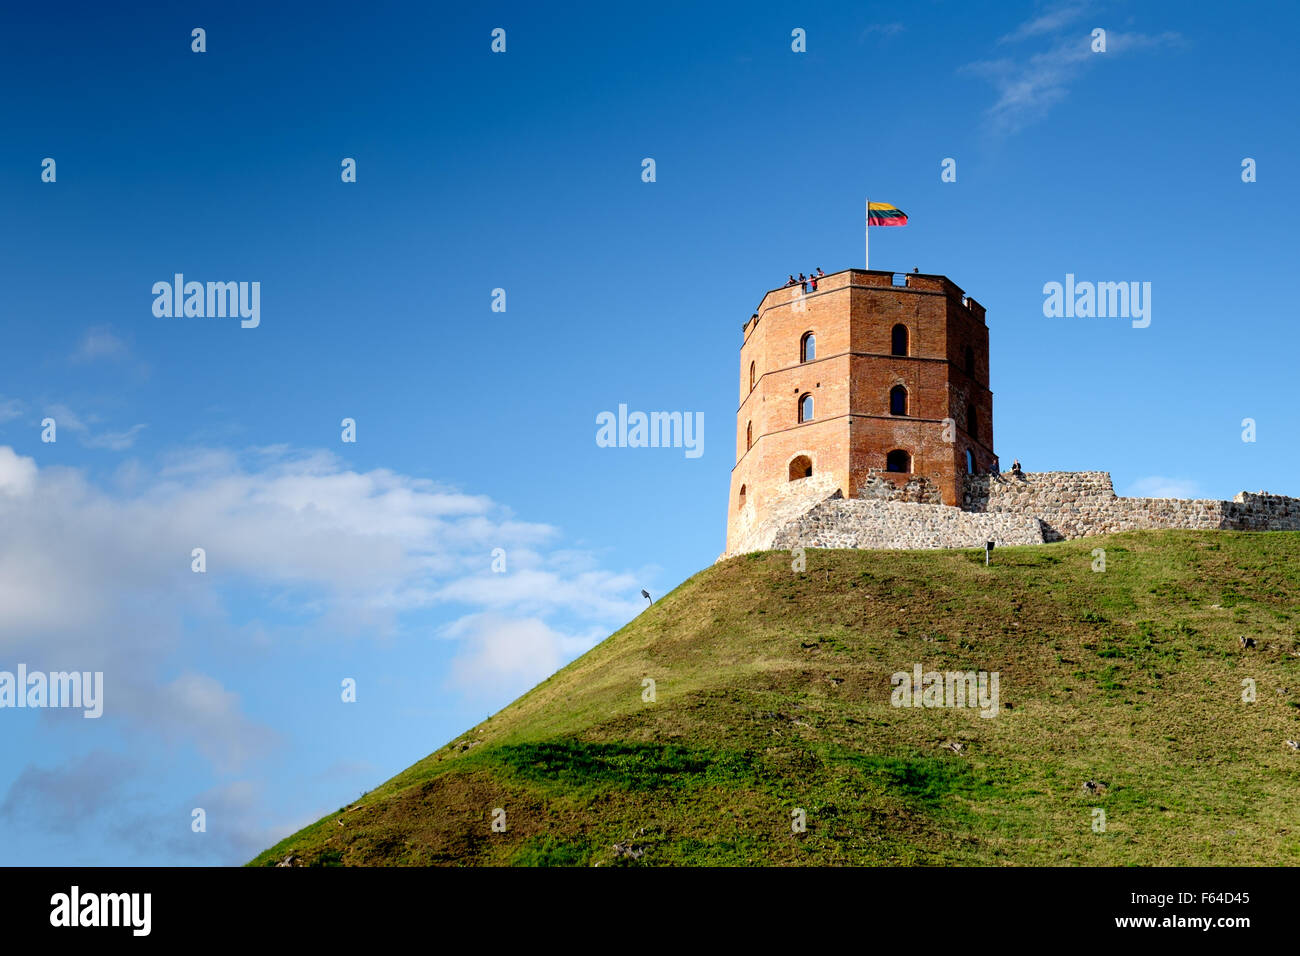 Gediminas Tower in Upper Castle in Vilnius, Lithuania - Stock Image